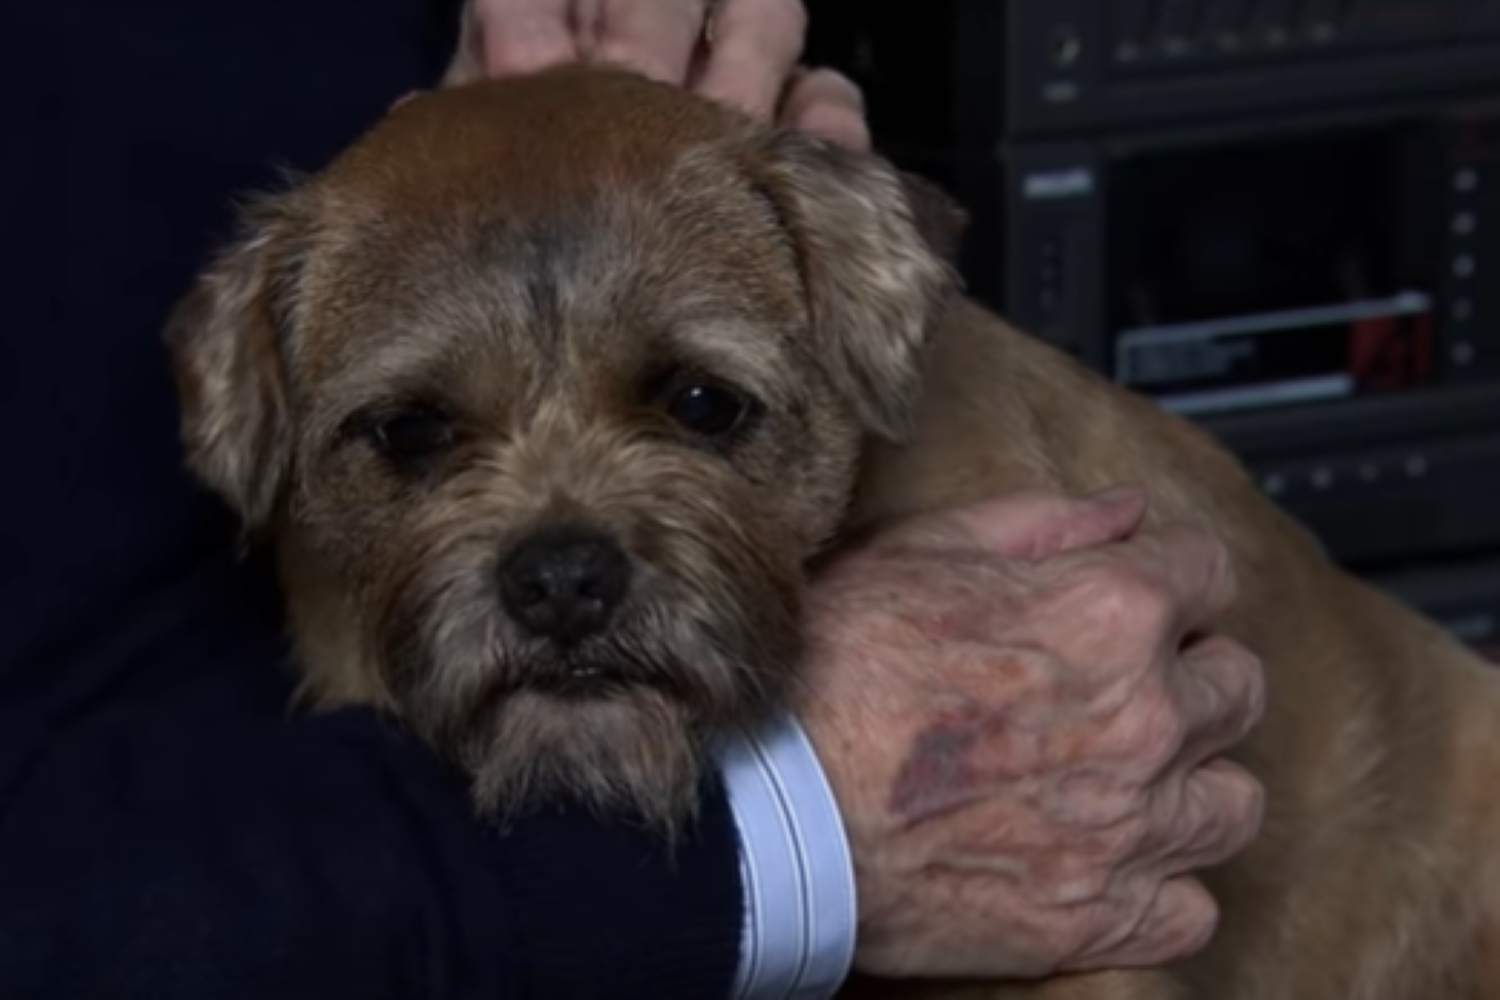 Coronation Street reassures fans the dogs playing Eccles are still alive